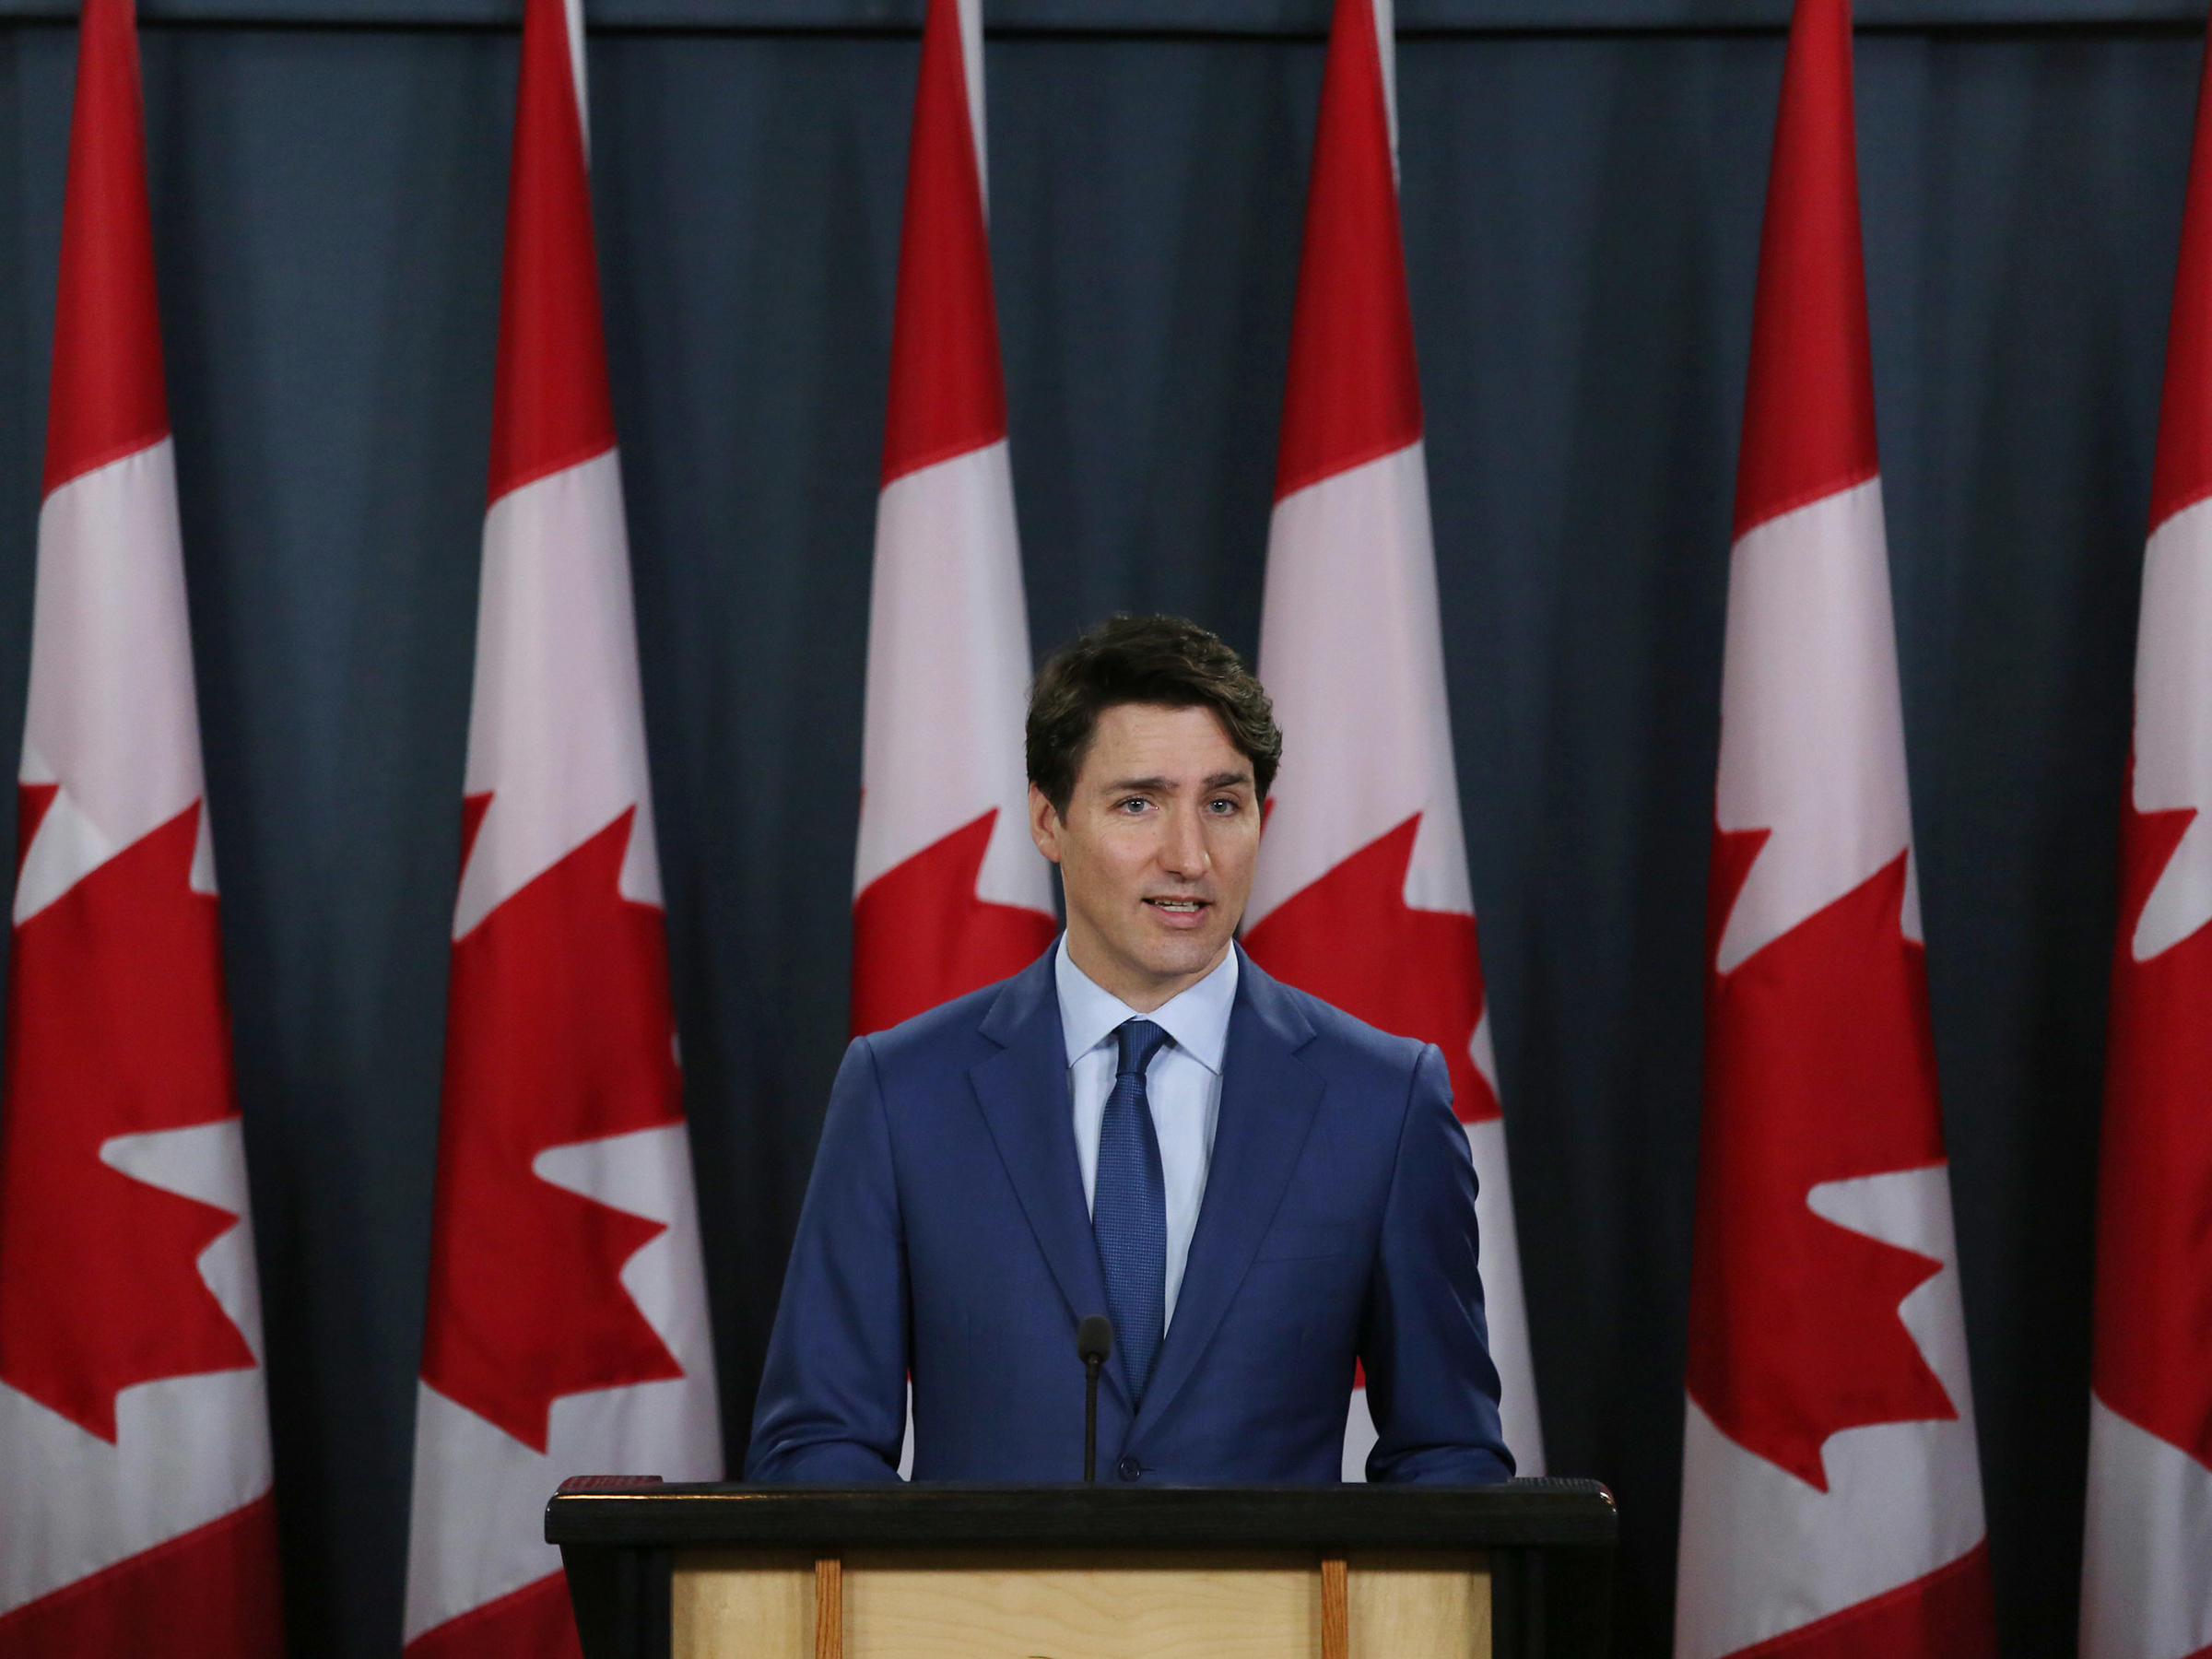 Canada's Prime Minister Justin Trudeau talks to reporters at a news conference on March 7 in Ottawa Canada. He was accused of interfering in a criminal investigation of SNC-Lavalin a powerful engineering firm